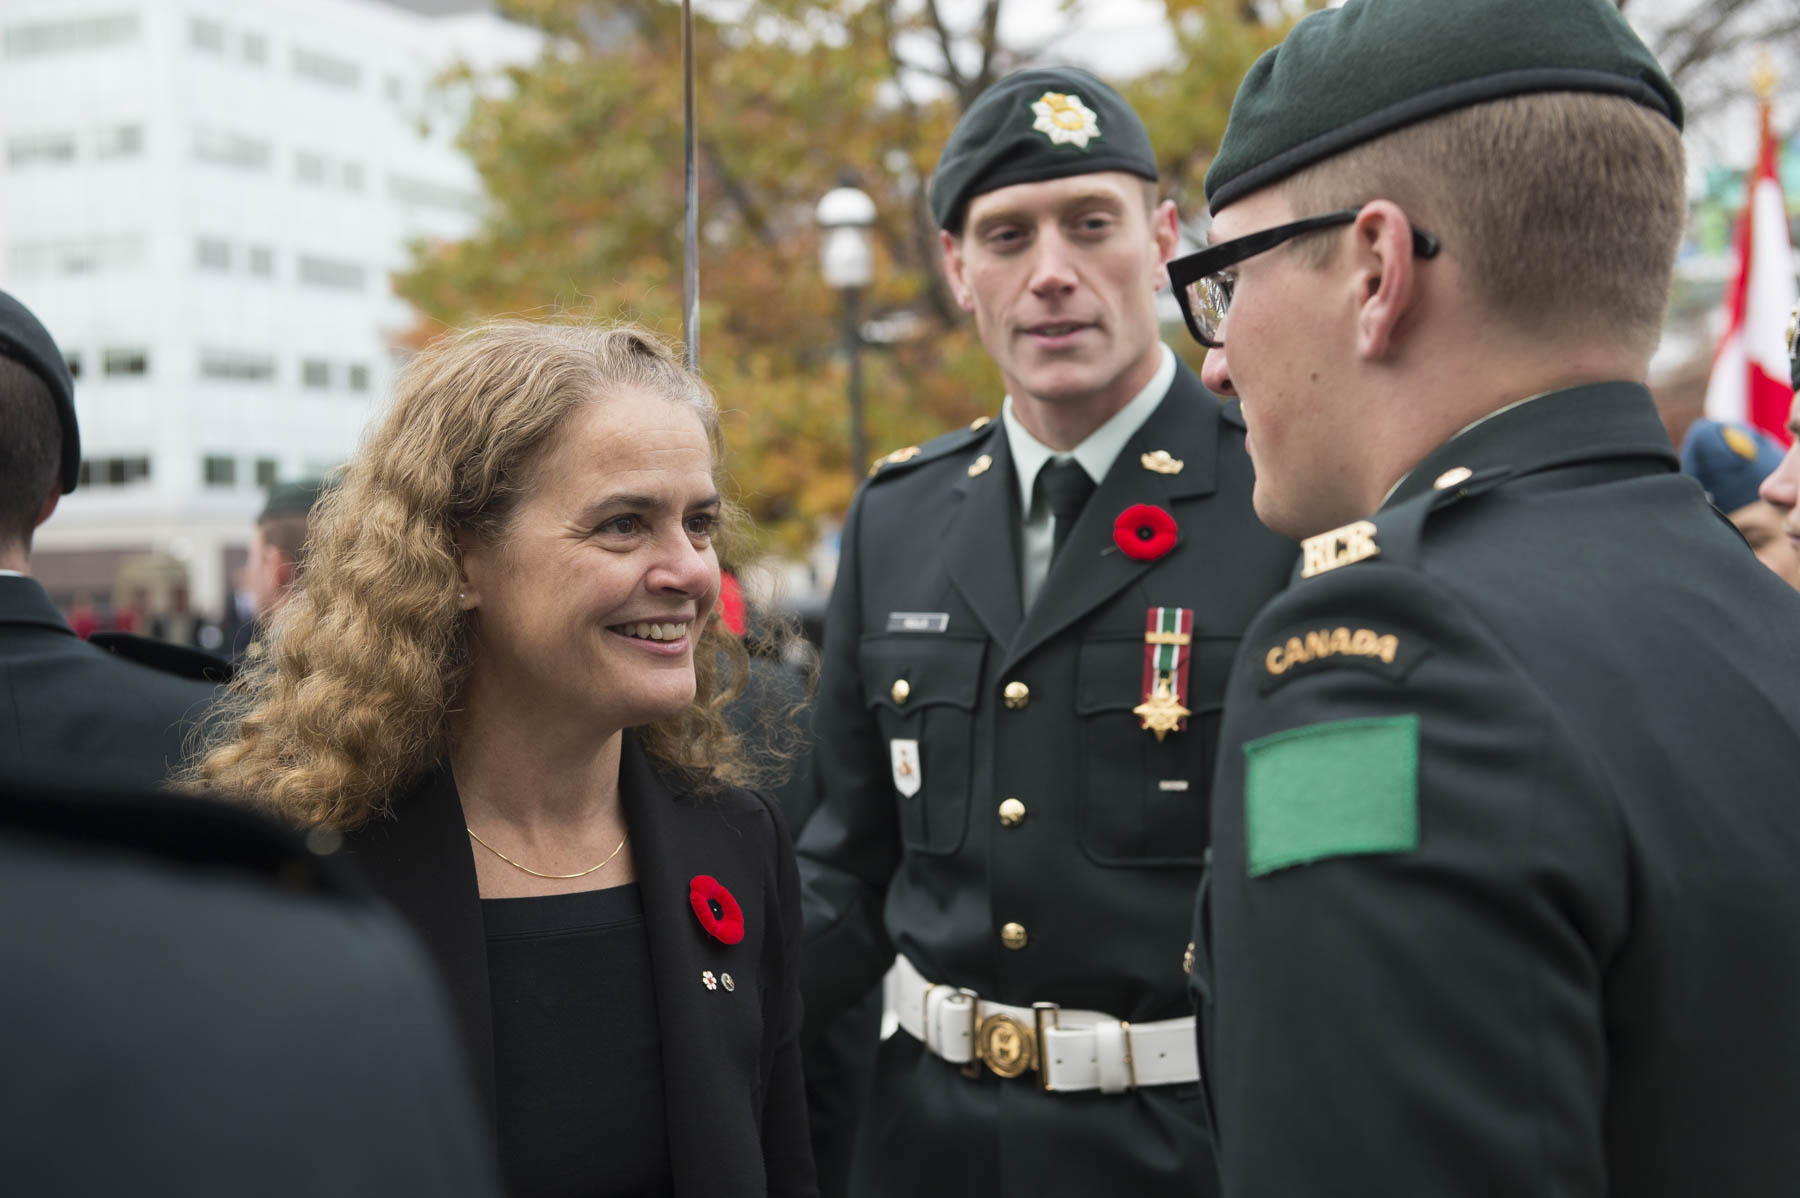 While Her Excellency reviewed the guard of honour, she stopped to thank members of the Canadian Armed Forces for their service.